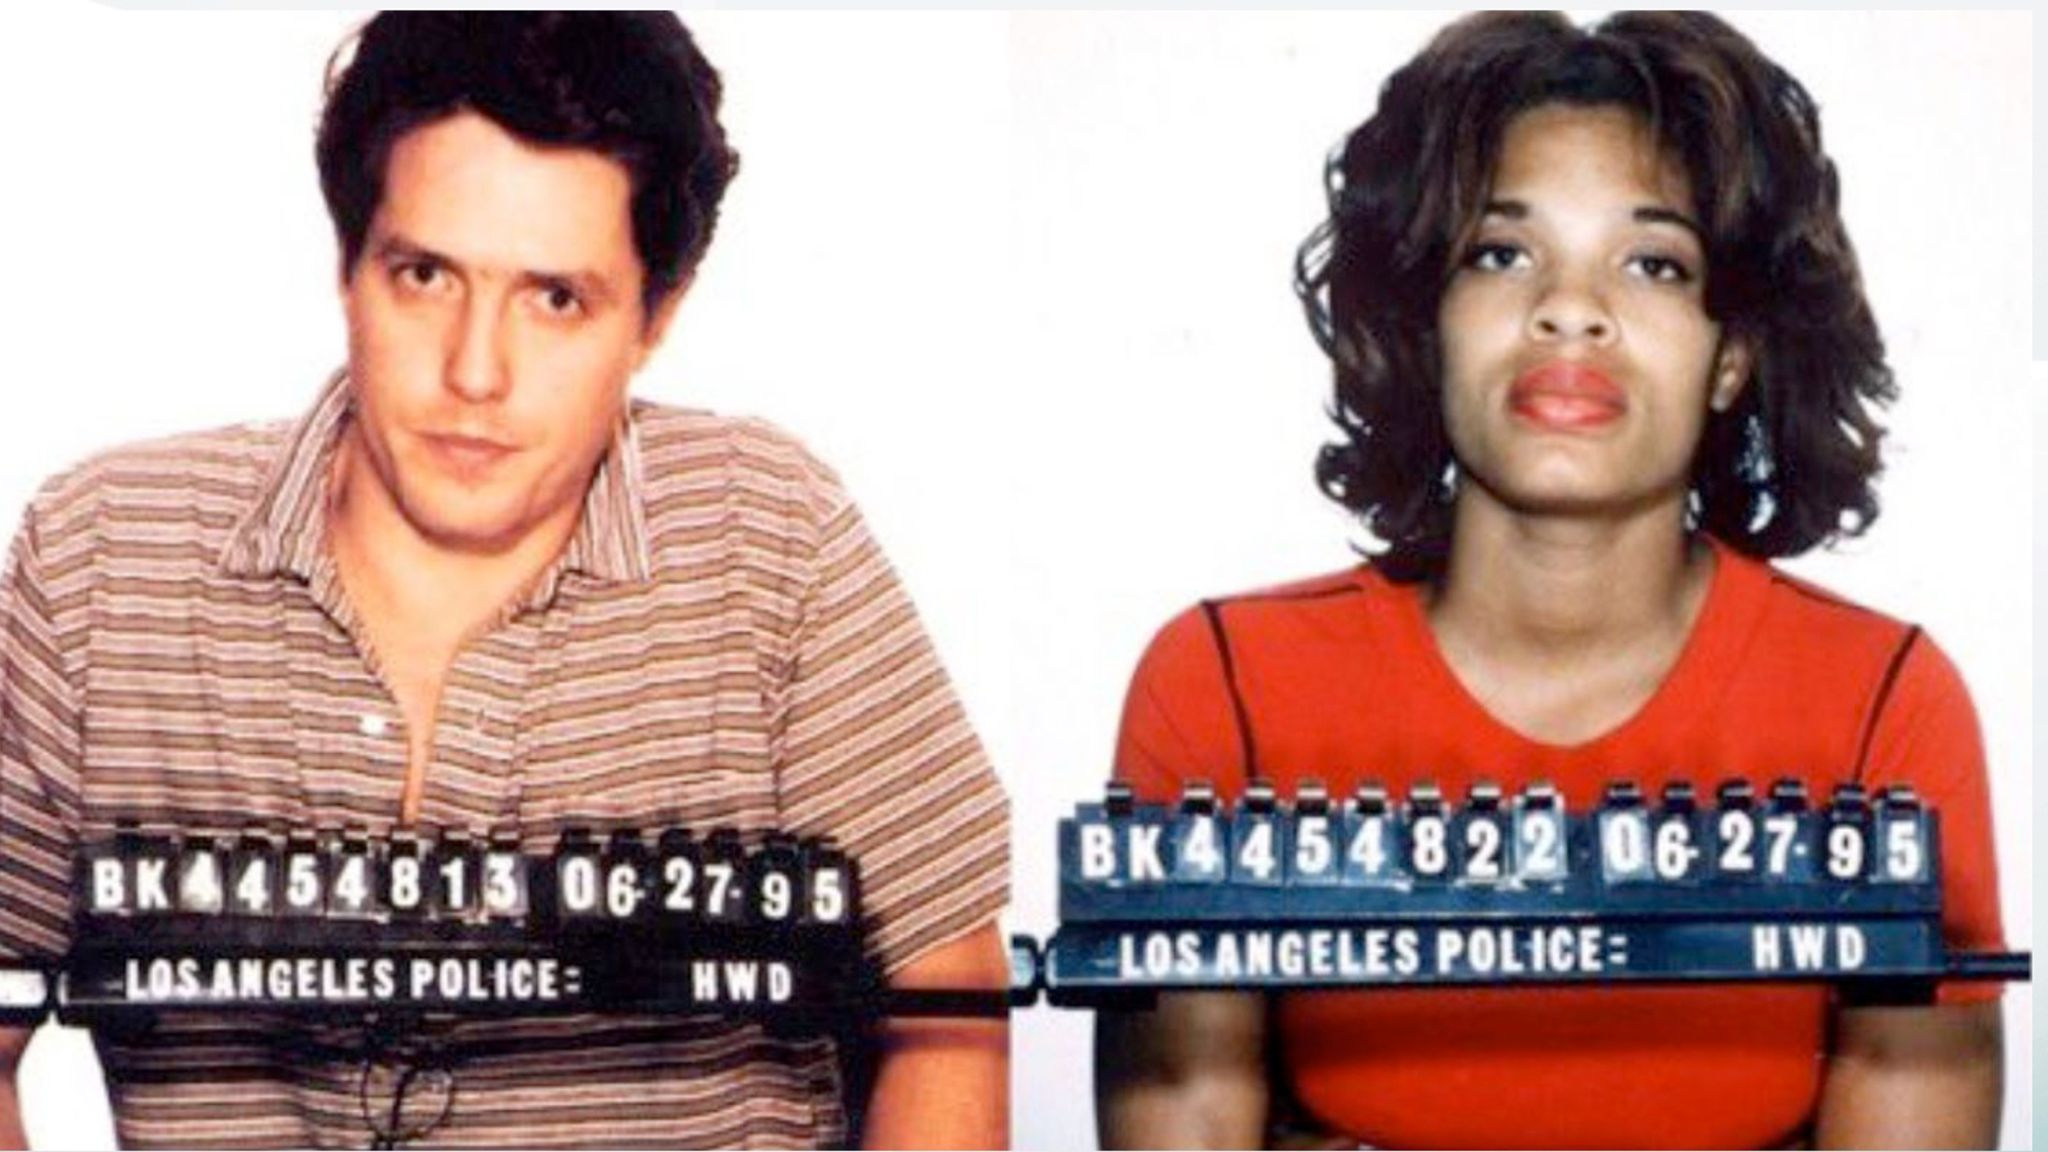 Hugh Grant tweets infamous mugshot after criticism over political flexibility